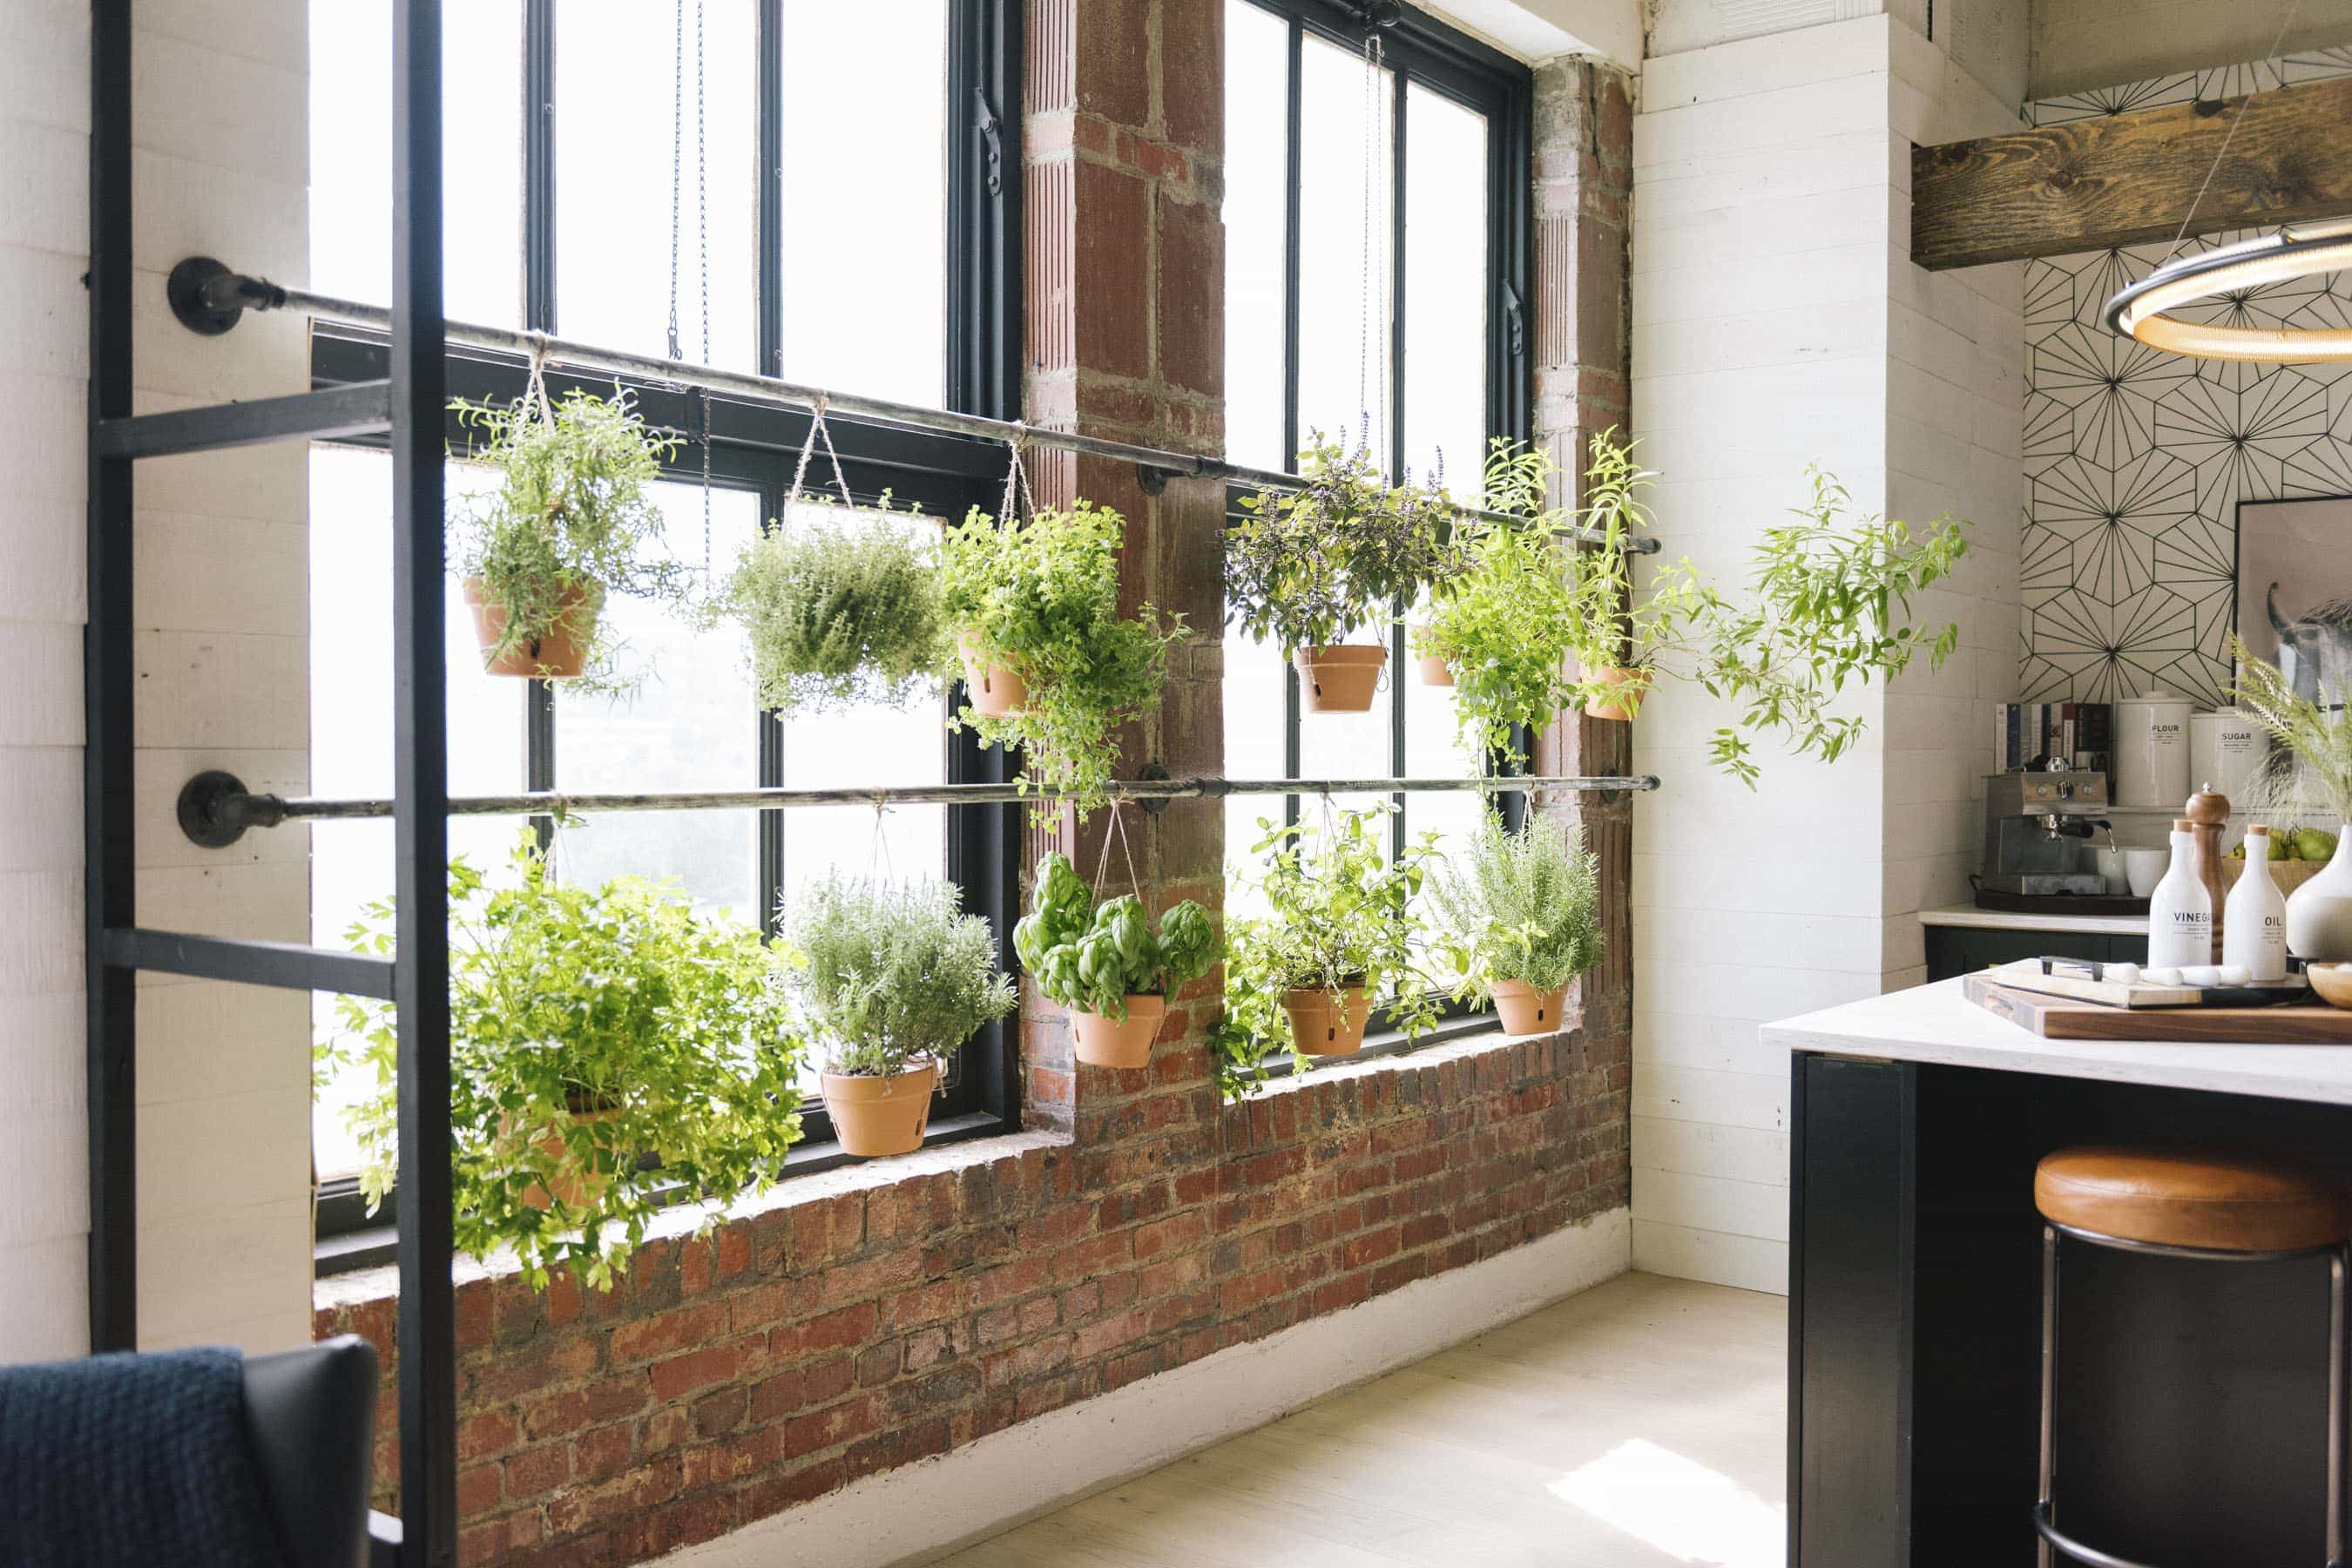 inside the queer eye apartment indoor plants exposed brick wall